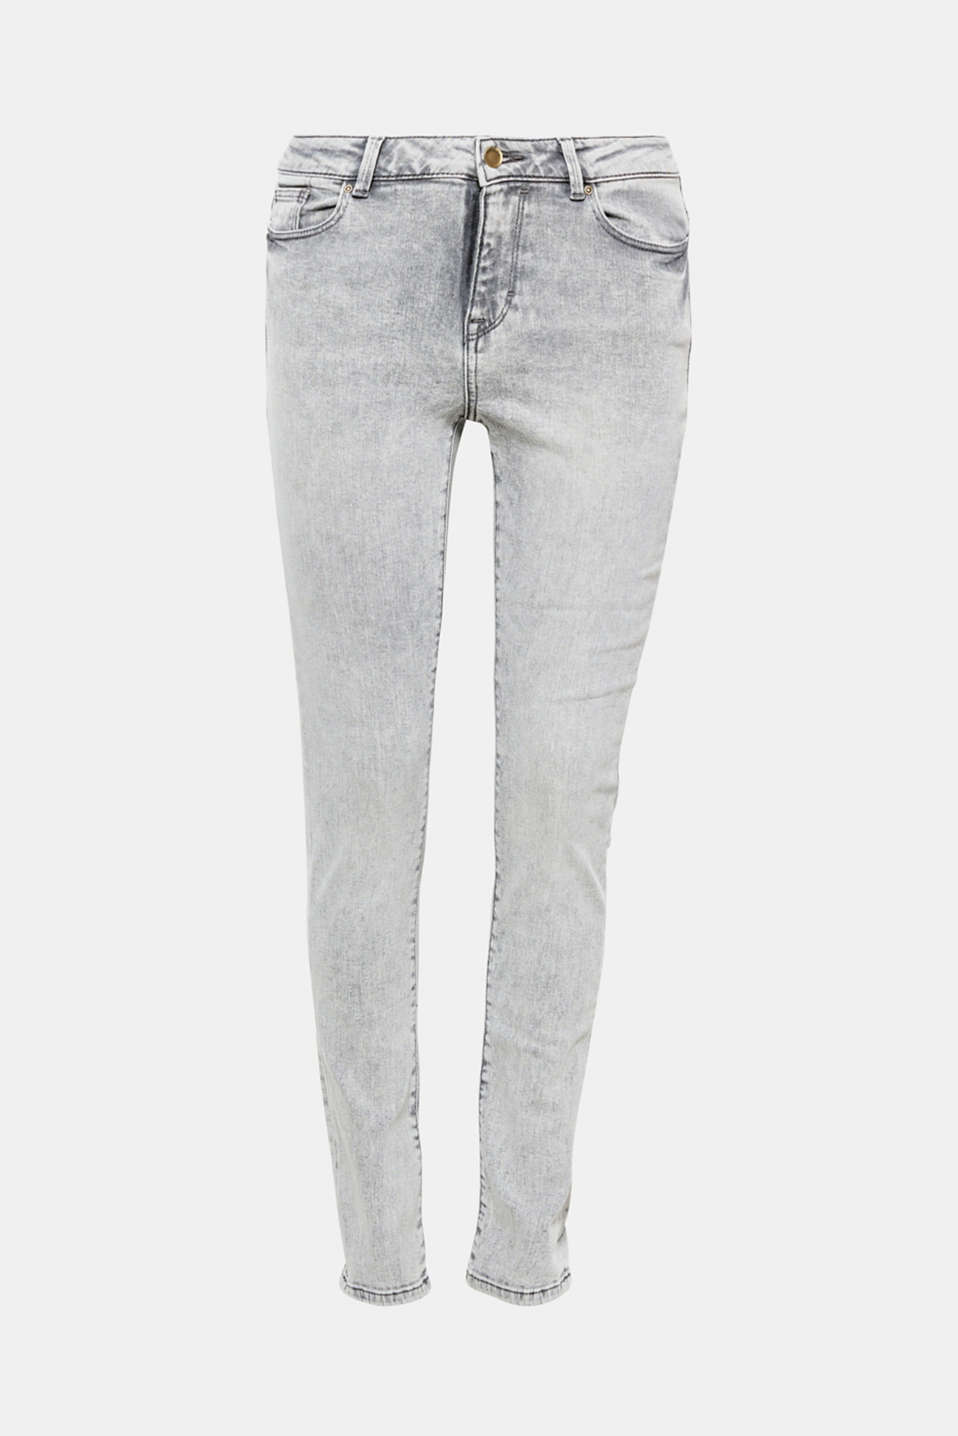 In a cool grey tone with an acid style garment wash: these narrow five-pocket jeans in stretchy cotton.